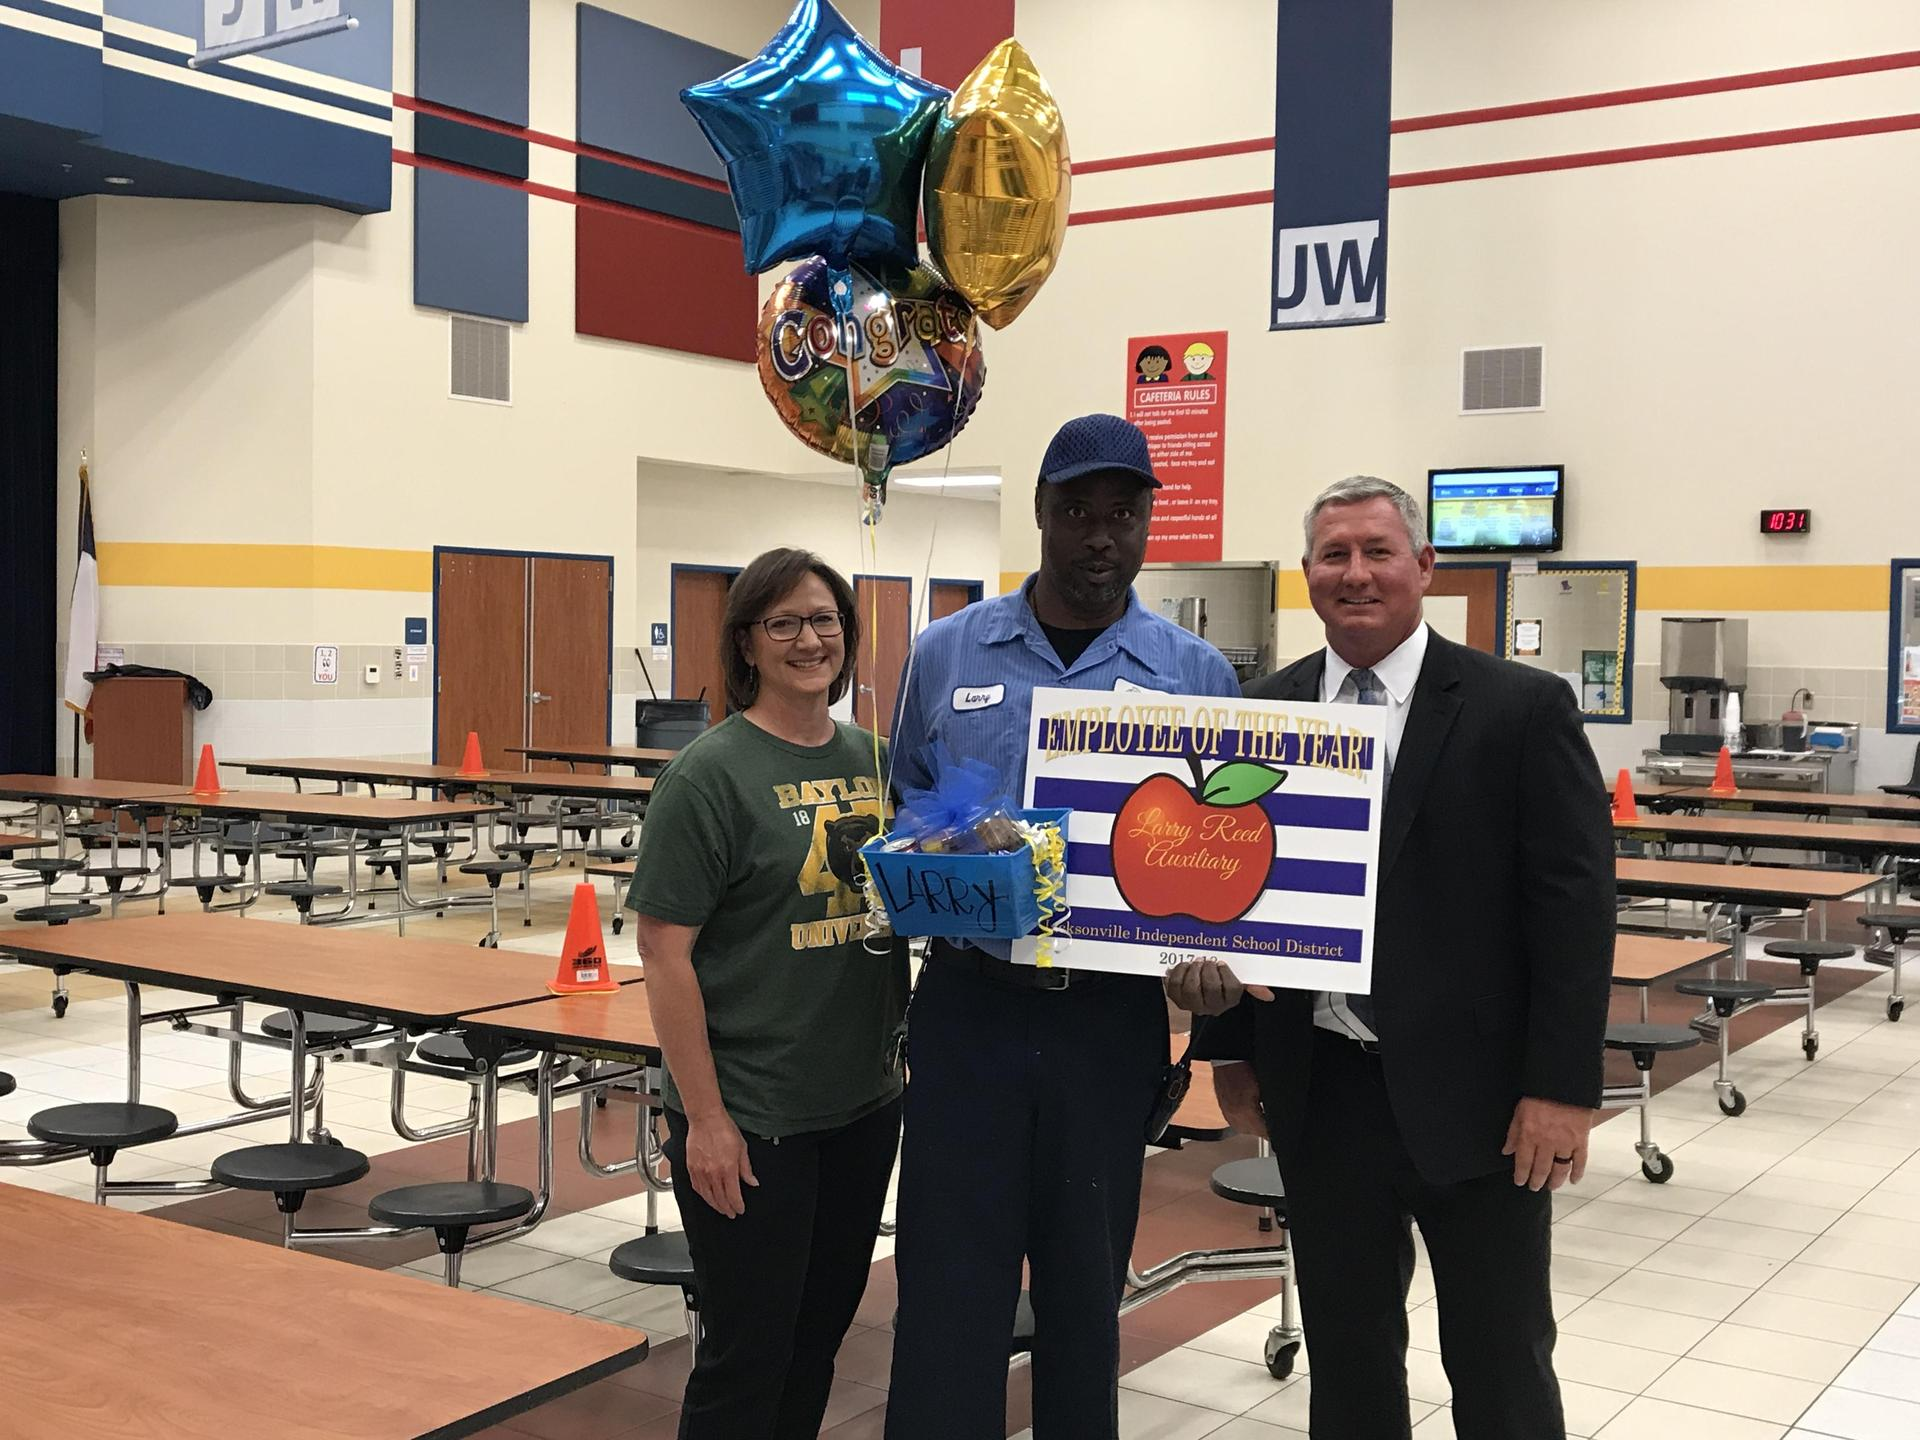 Larry Reed - Joe Wright Teacher of the Year